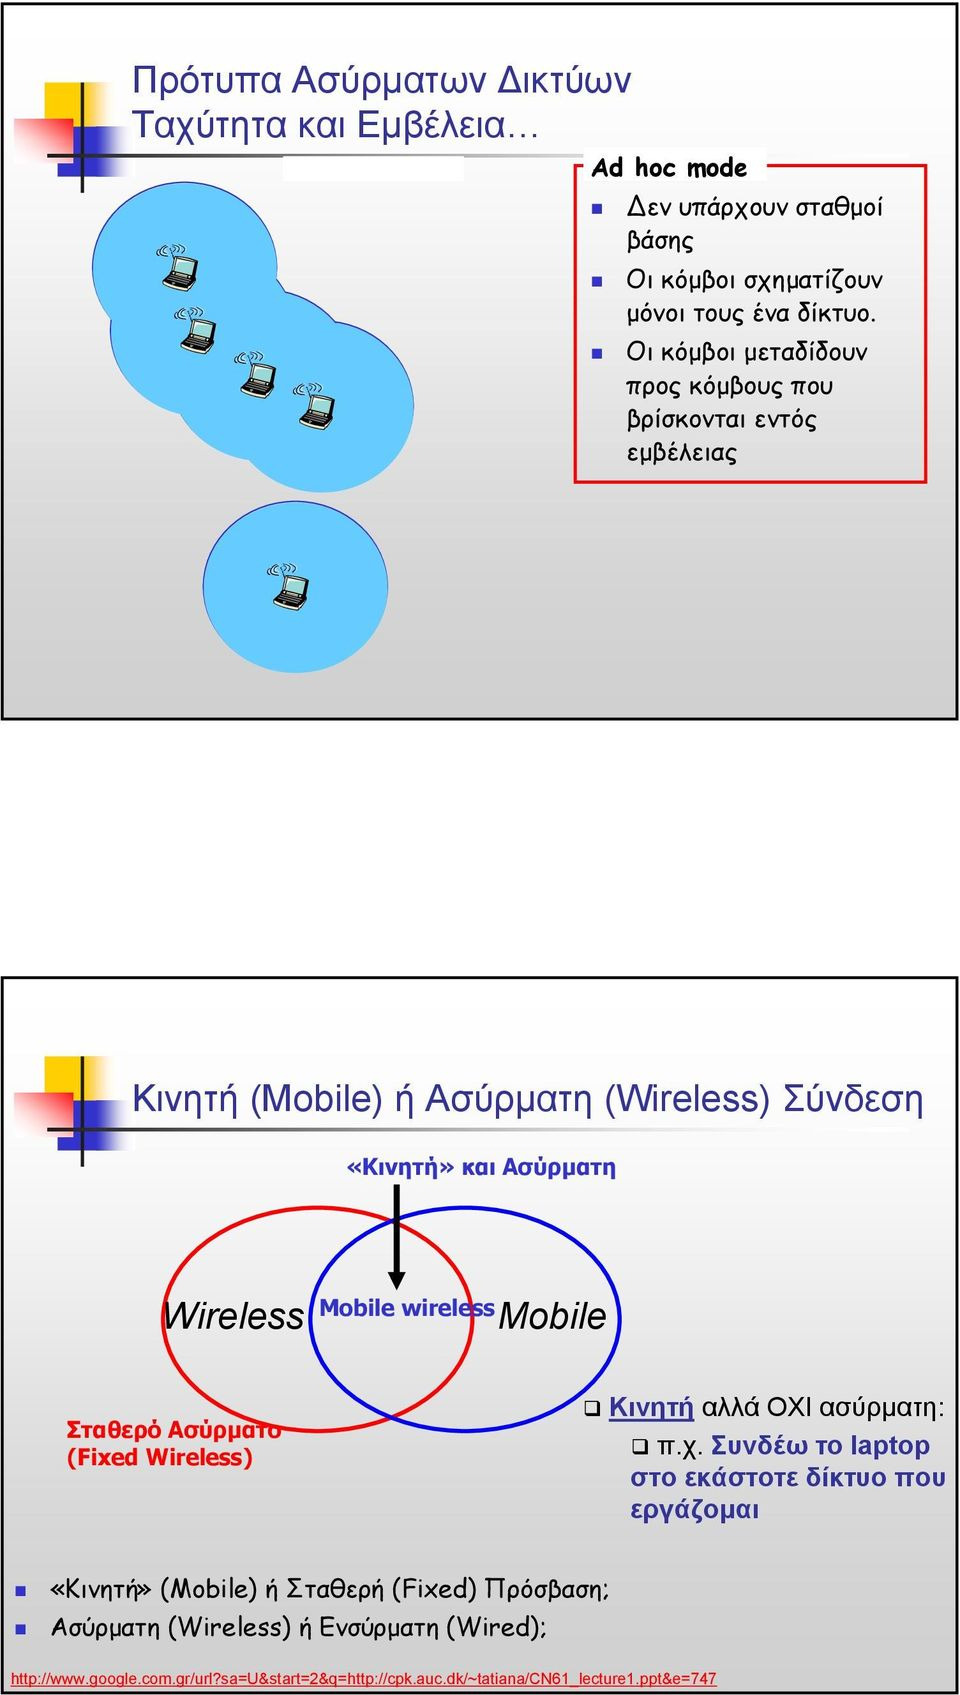 Mobile wireless Mobile Σταθερό Ασύρµατο (Fixed Wireless) Κινητή αλλά ΟΧΙ ασύρµατη: π.χ.